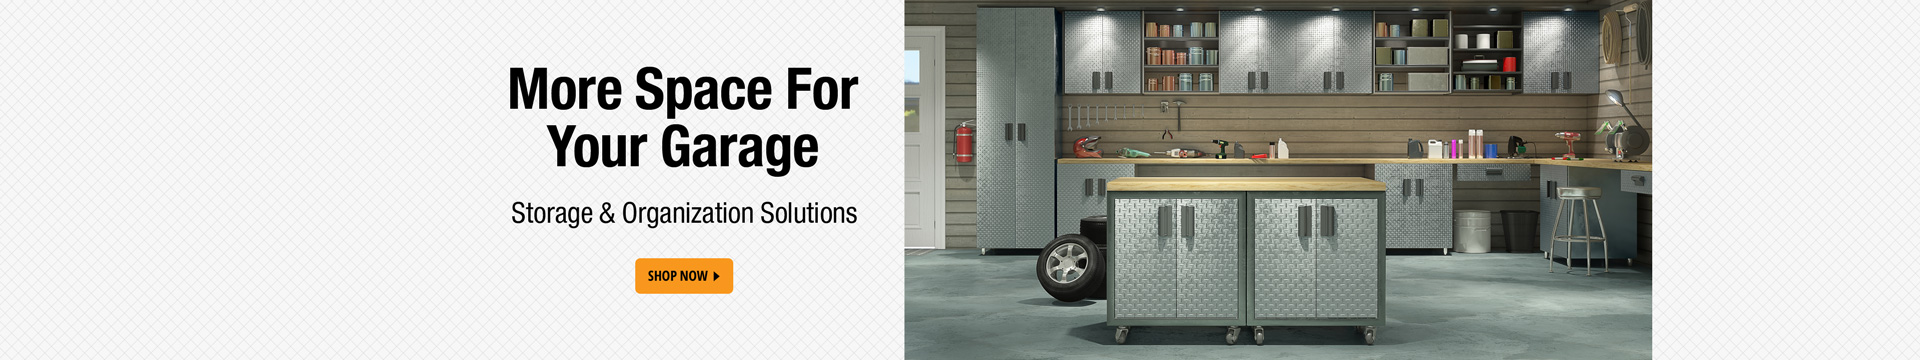 More Space For Your Garage